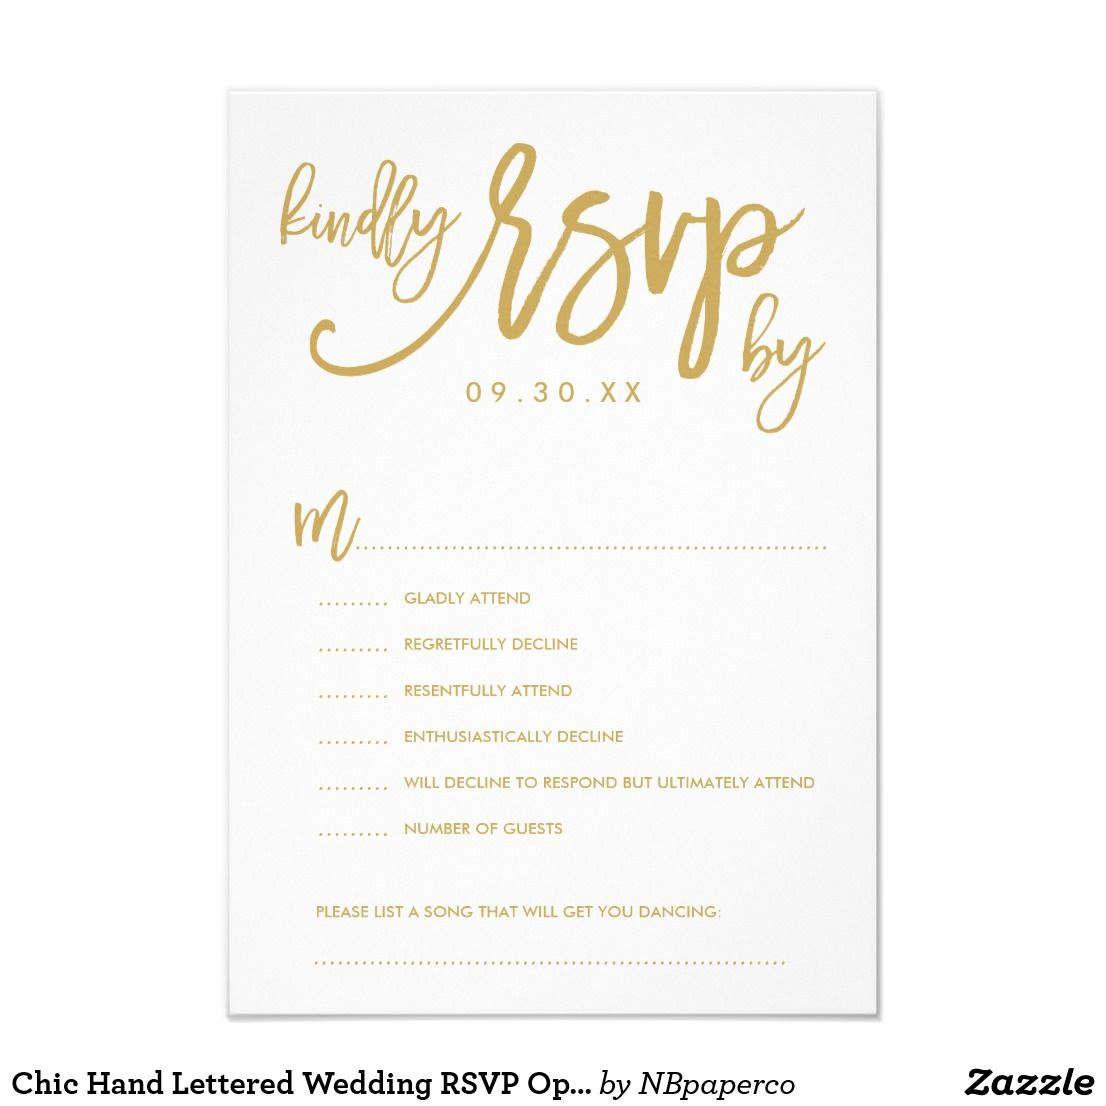 Chic hand lettered wedding rsvp options card thank you cards chic hand lettered wedding rsvp options card stopboris Images